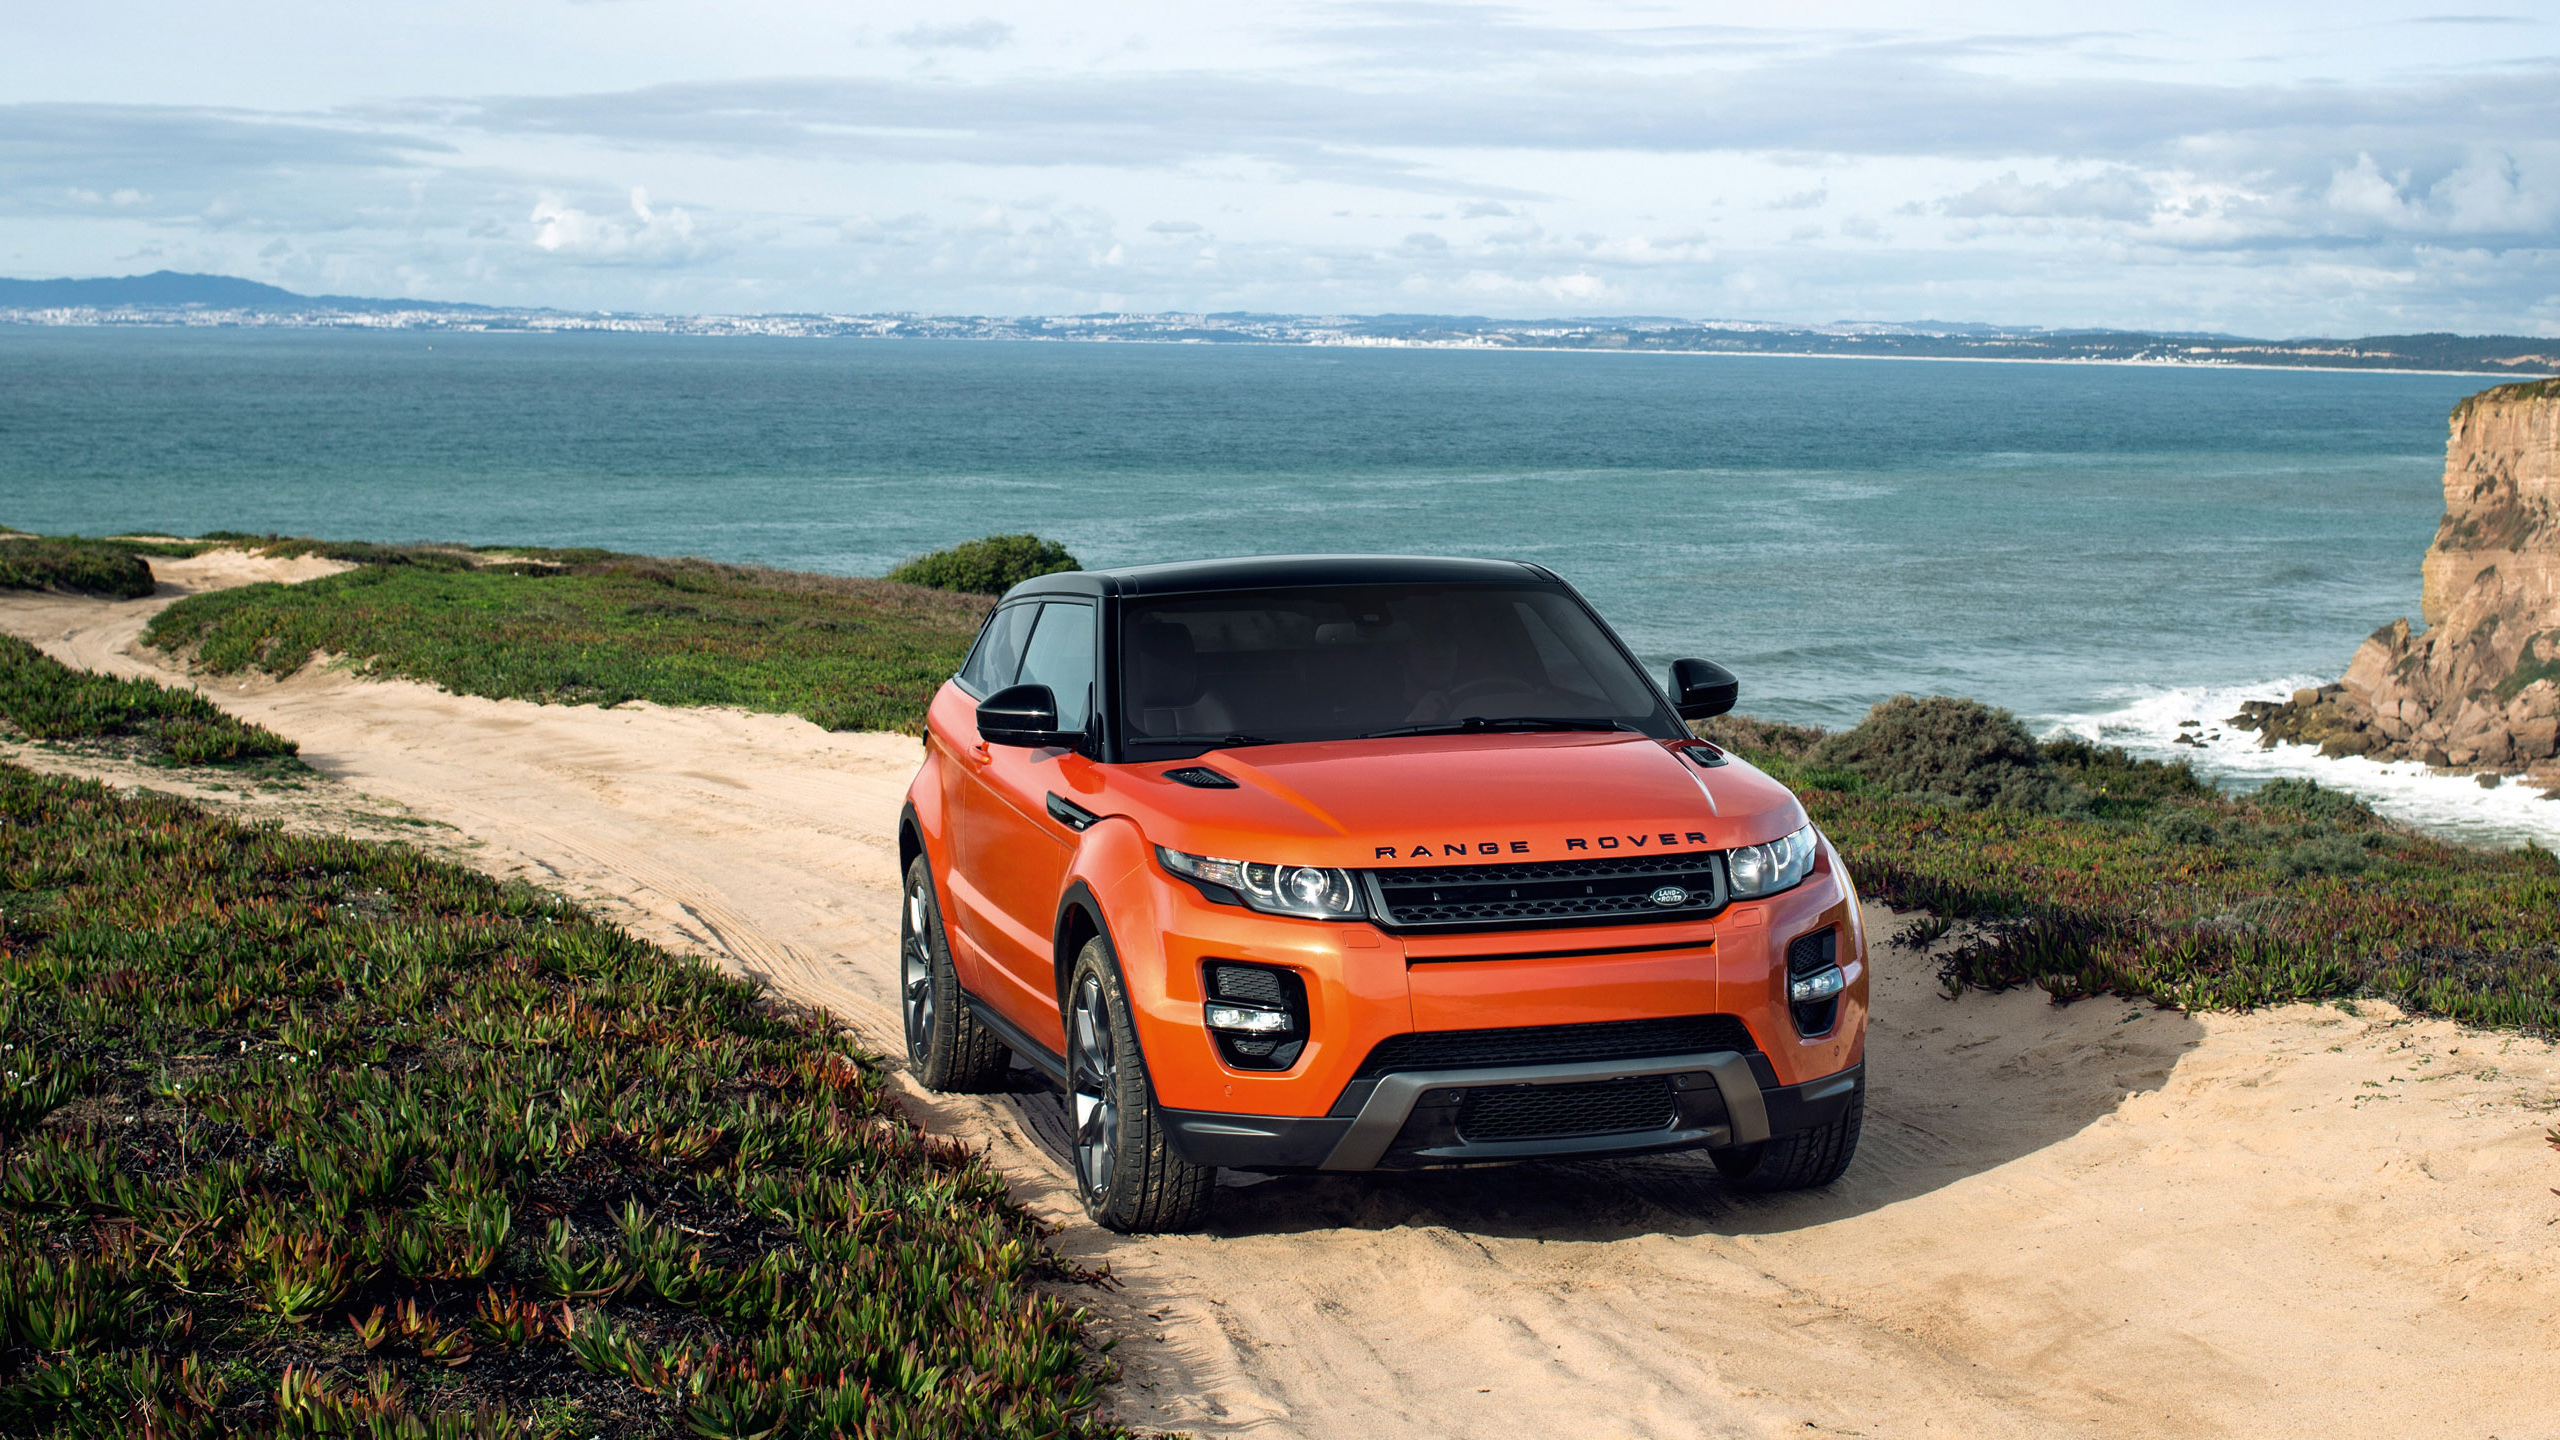 Latest Range Rover Sport >> 2014 Land Rover Range Rover Evoque Autobiography Dynamic Wallpaper | HD Car Wallpapers | ID #4318